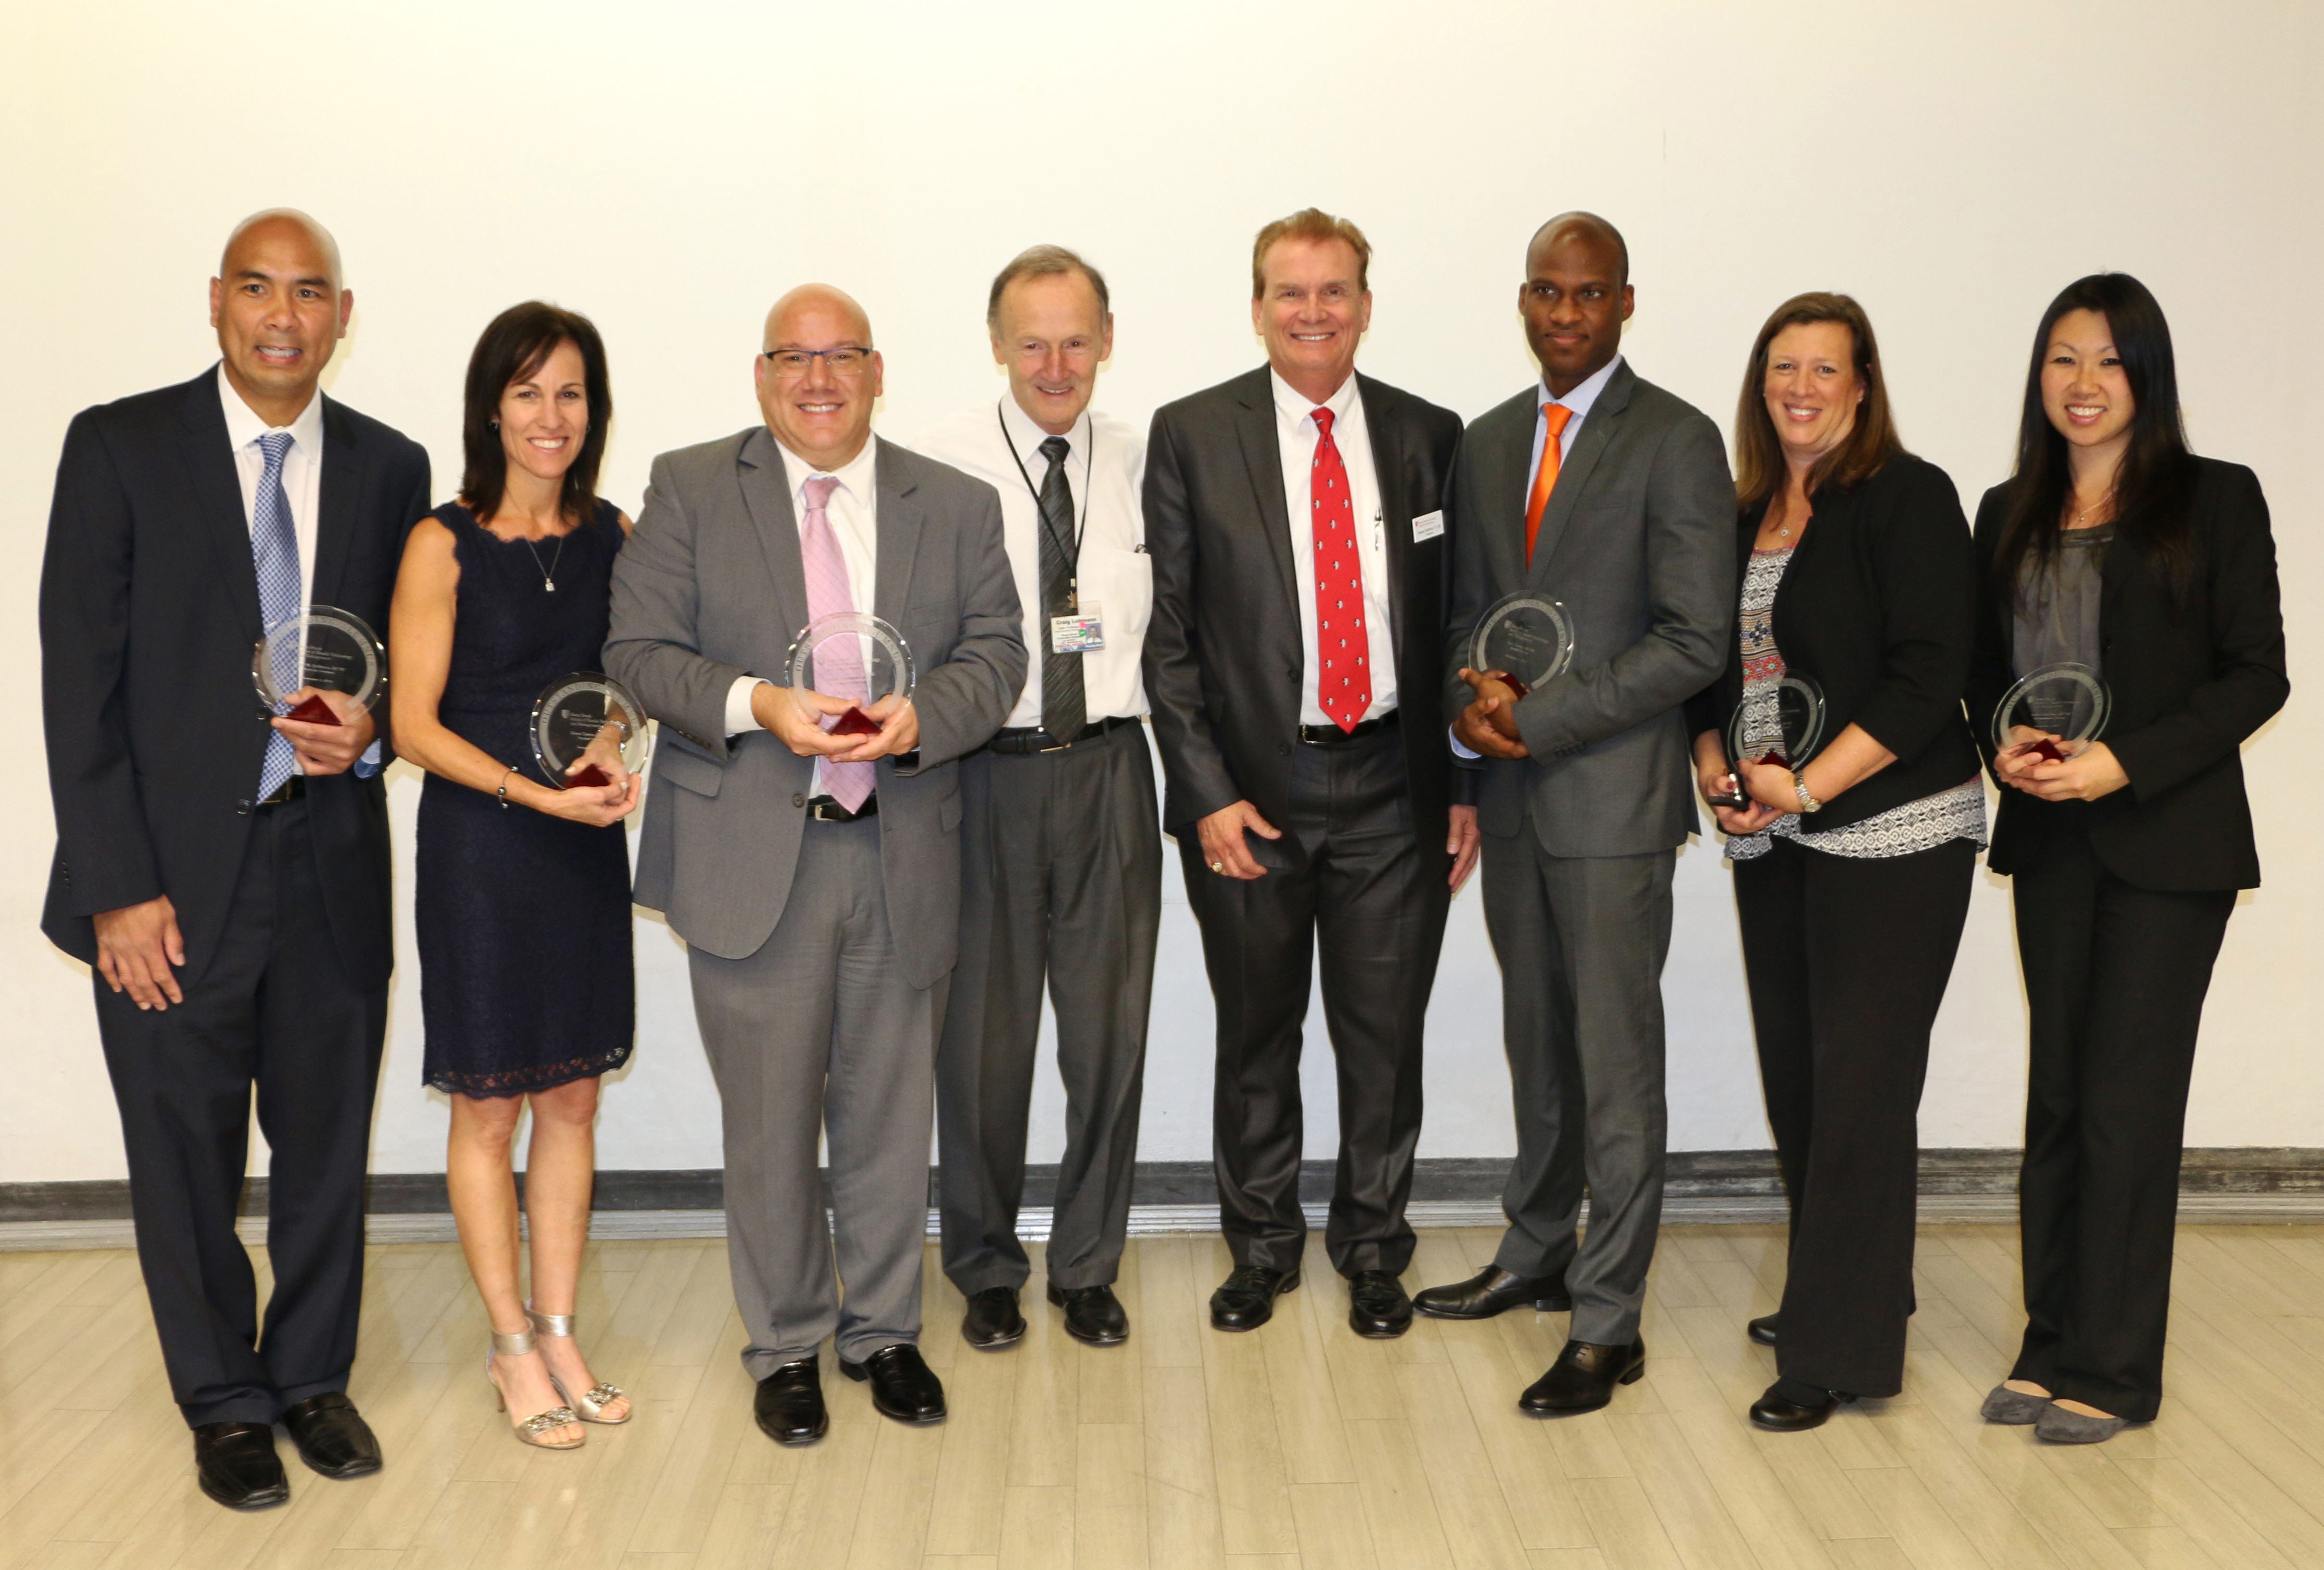 (From Left to Right: Victor M. DyReyes '97; Diana Tjaden '03; Ernest J. Conforti '95; Craig Lehmann, PhD, Dean and Professor, School of Health Technology and Management; Robert Stafford '72, '82, President of the Stony Brook Alumni Association; Karl Pierre '06; Celeste Murphy '85; Anita Liu-Chen '02)